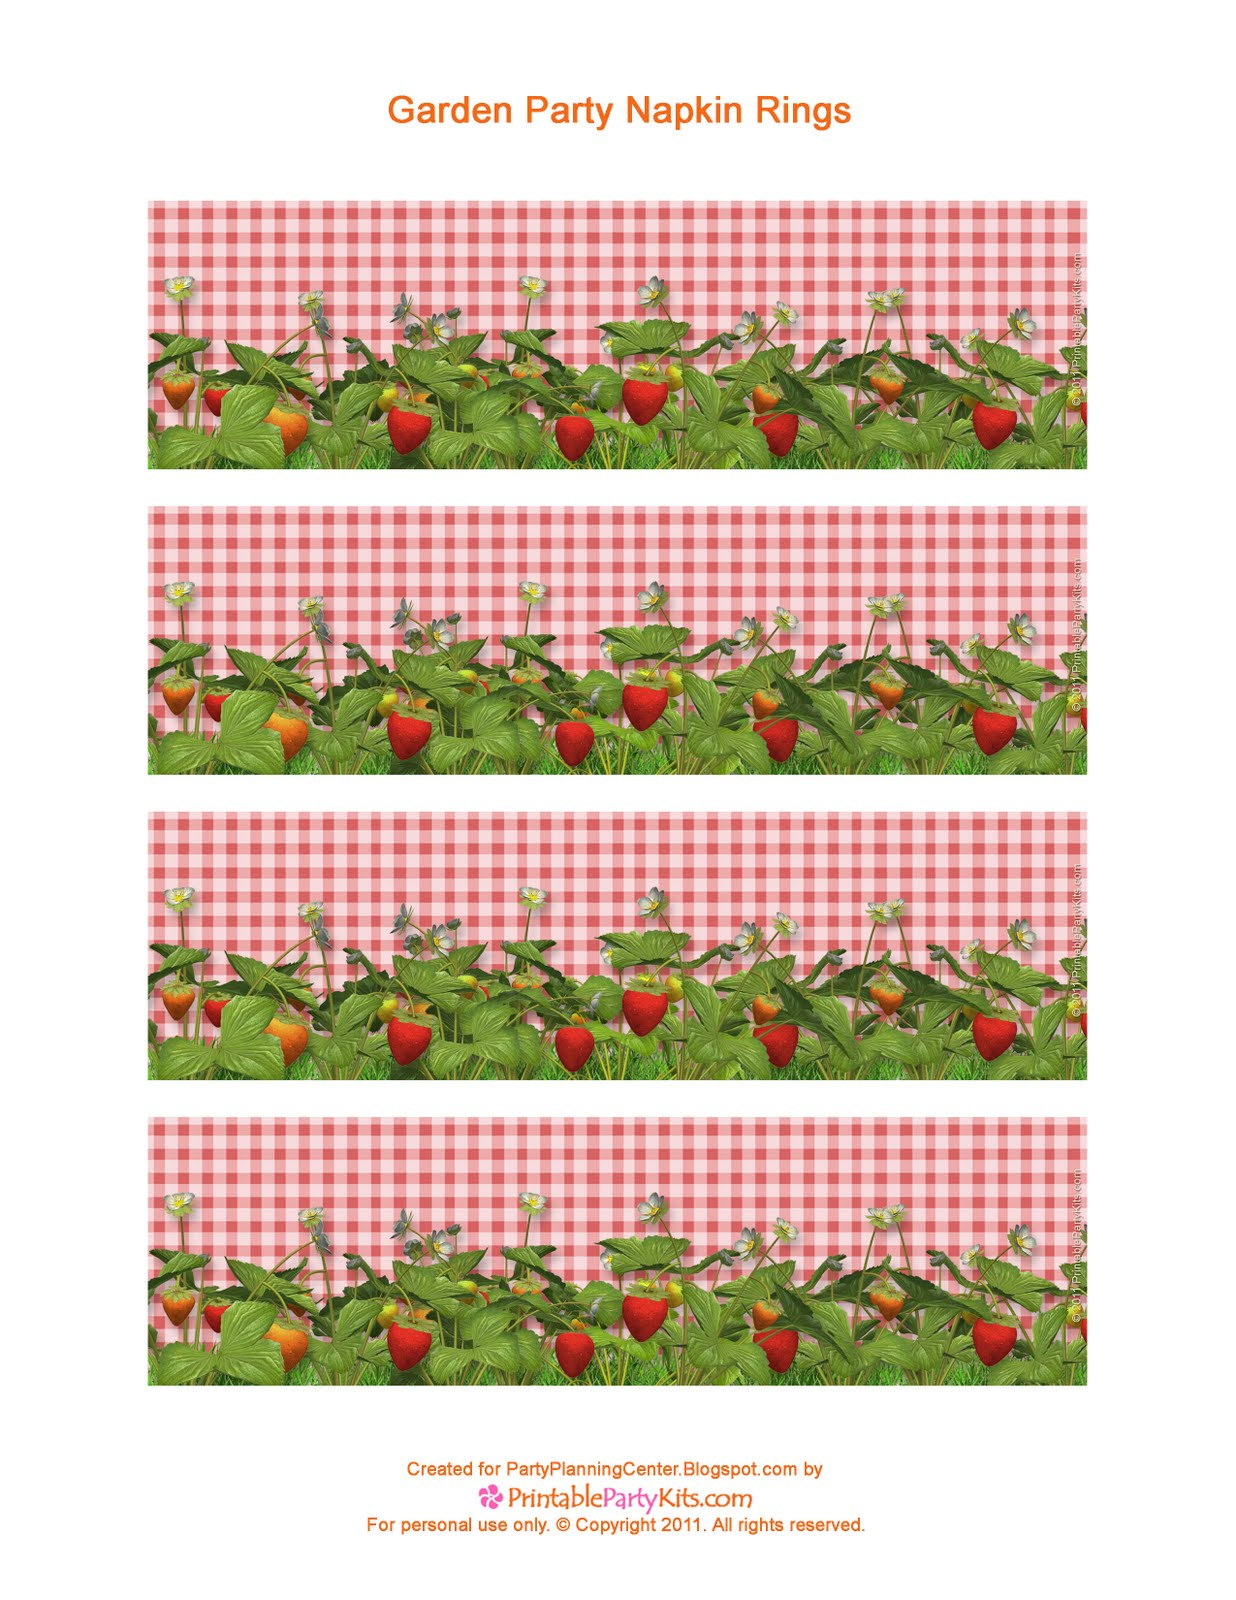 Party Planning Center Printable Garden Party Paper Napkin